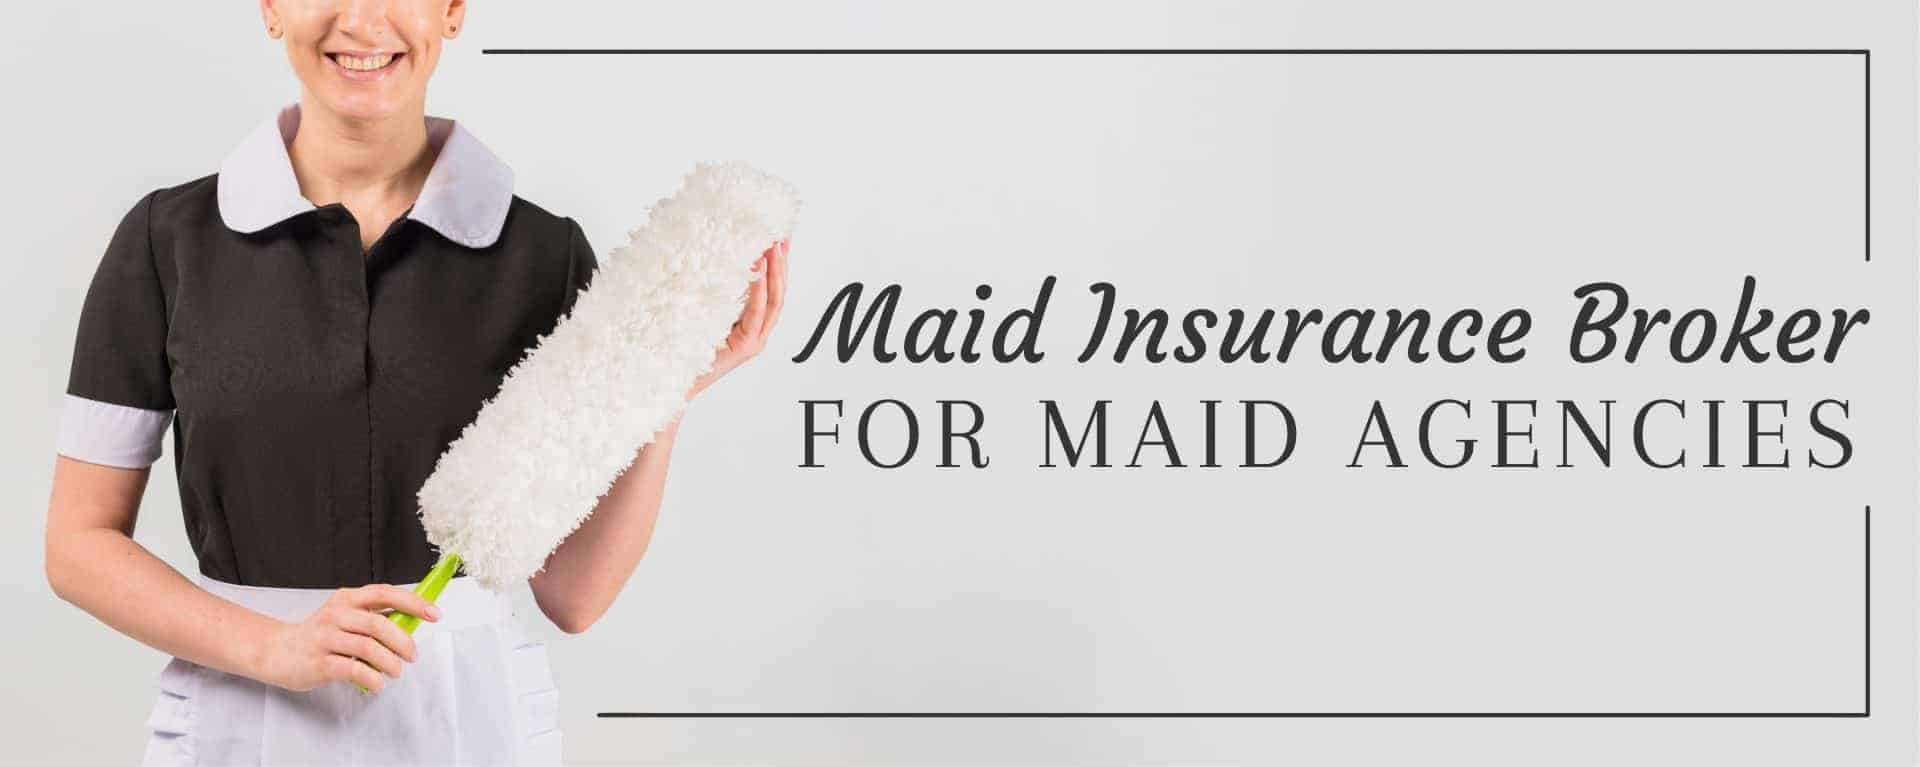 Maid Insurance Broker for Maid Agencies